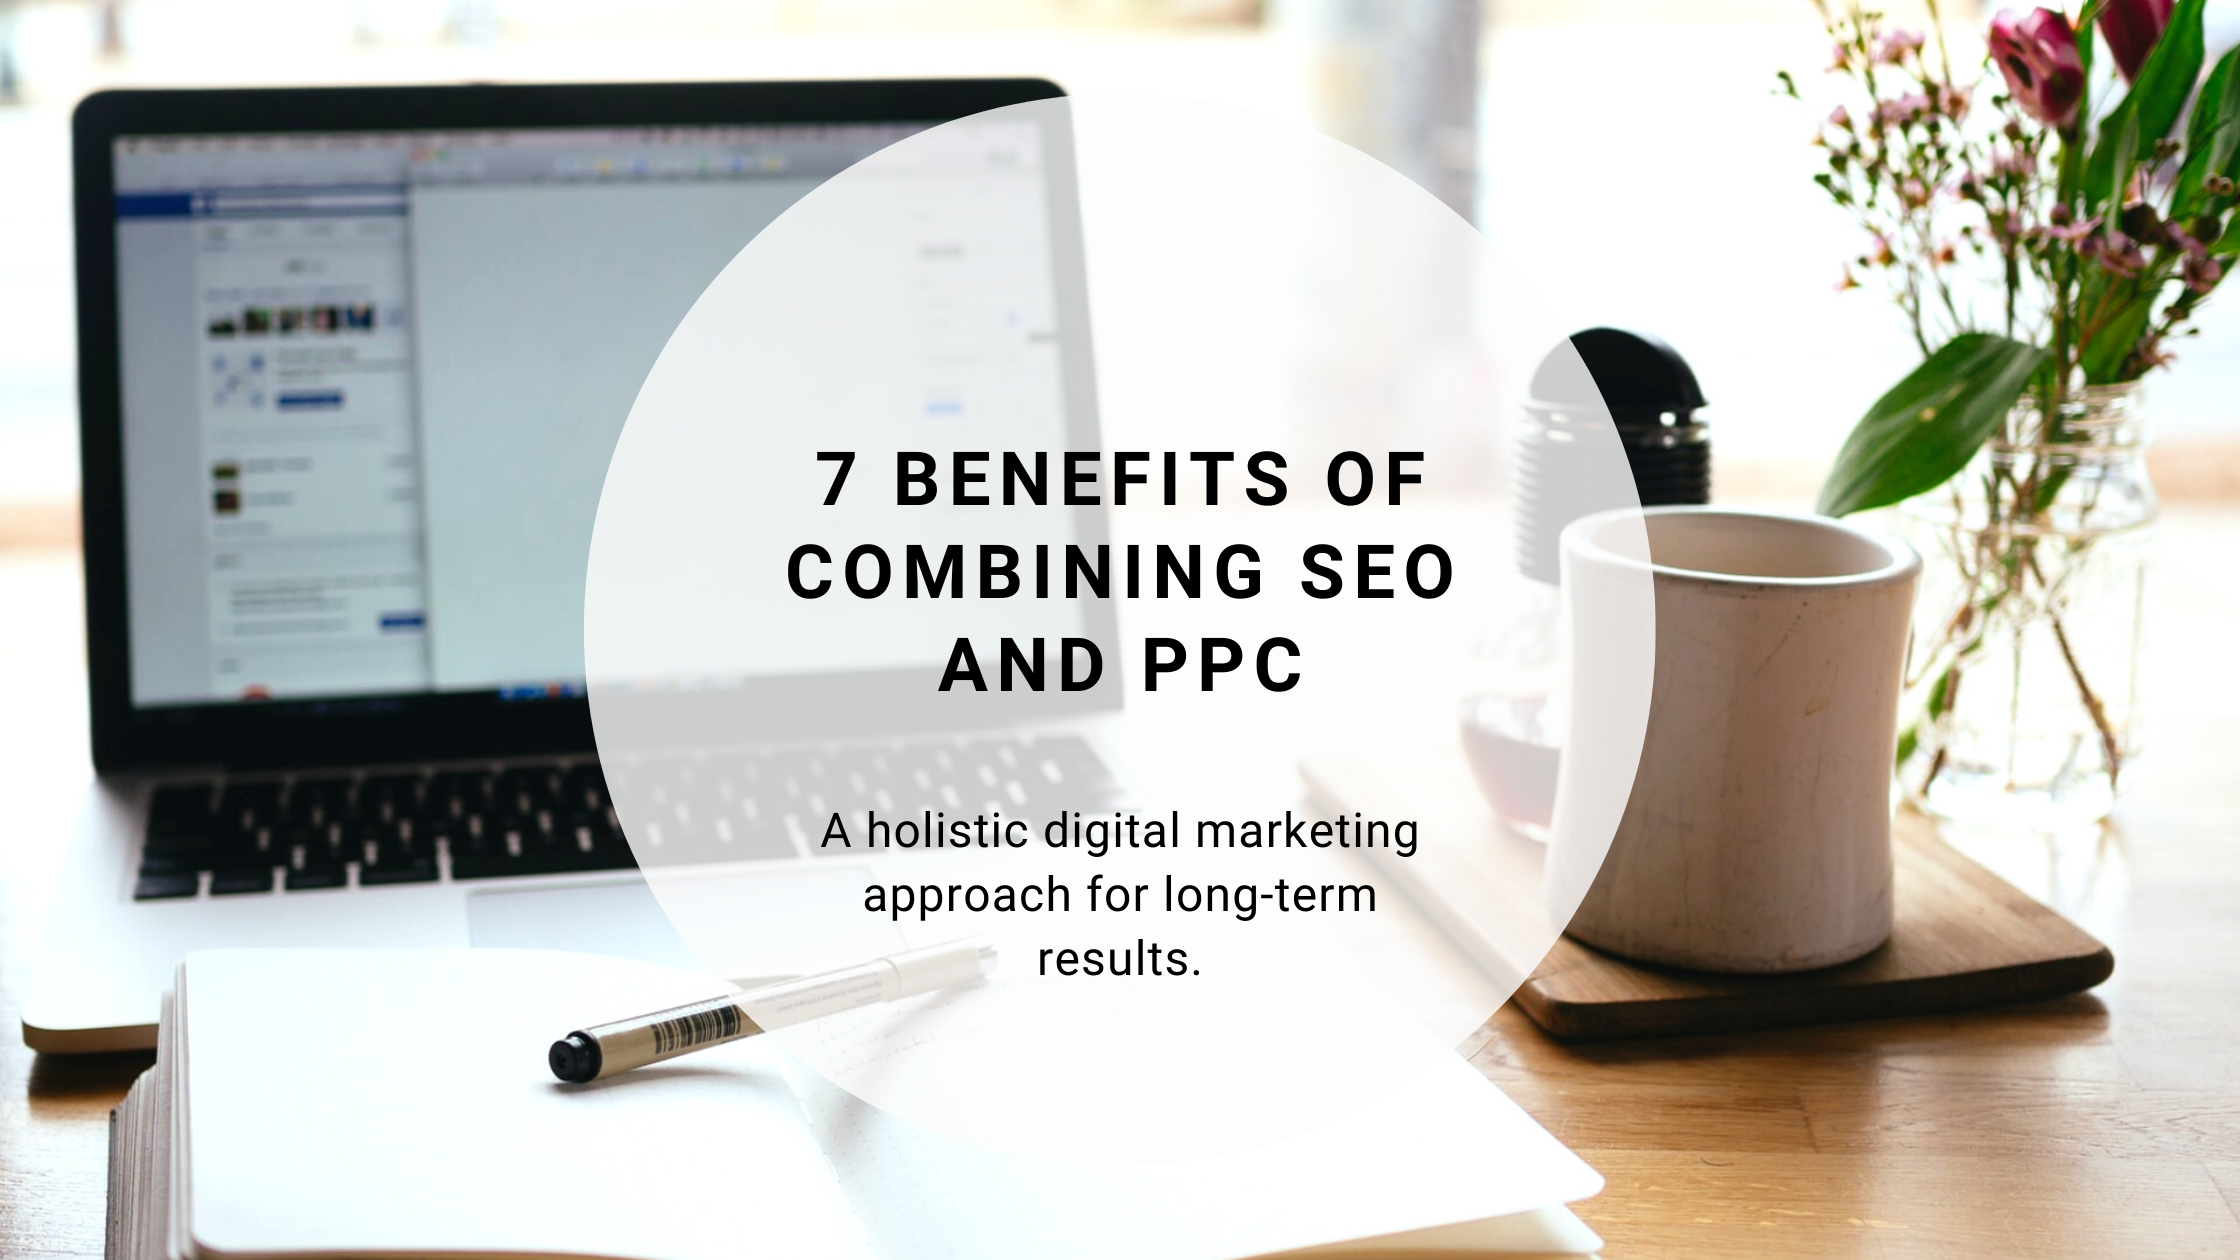 7 Benefits of Combining SEO and PPC